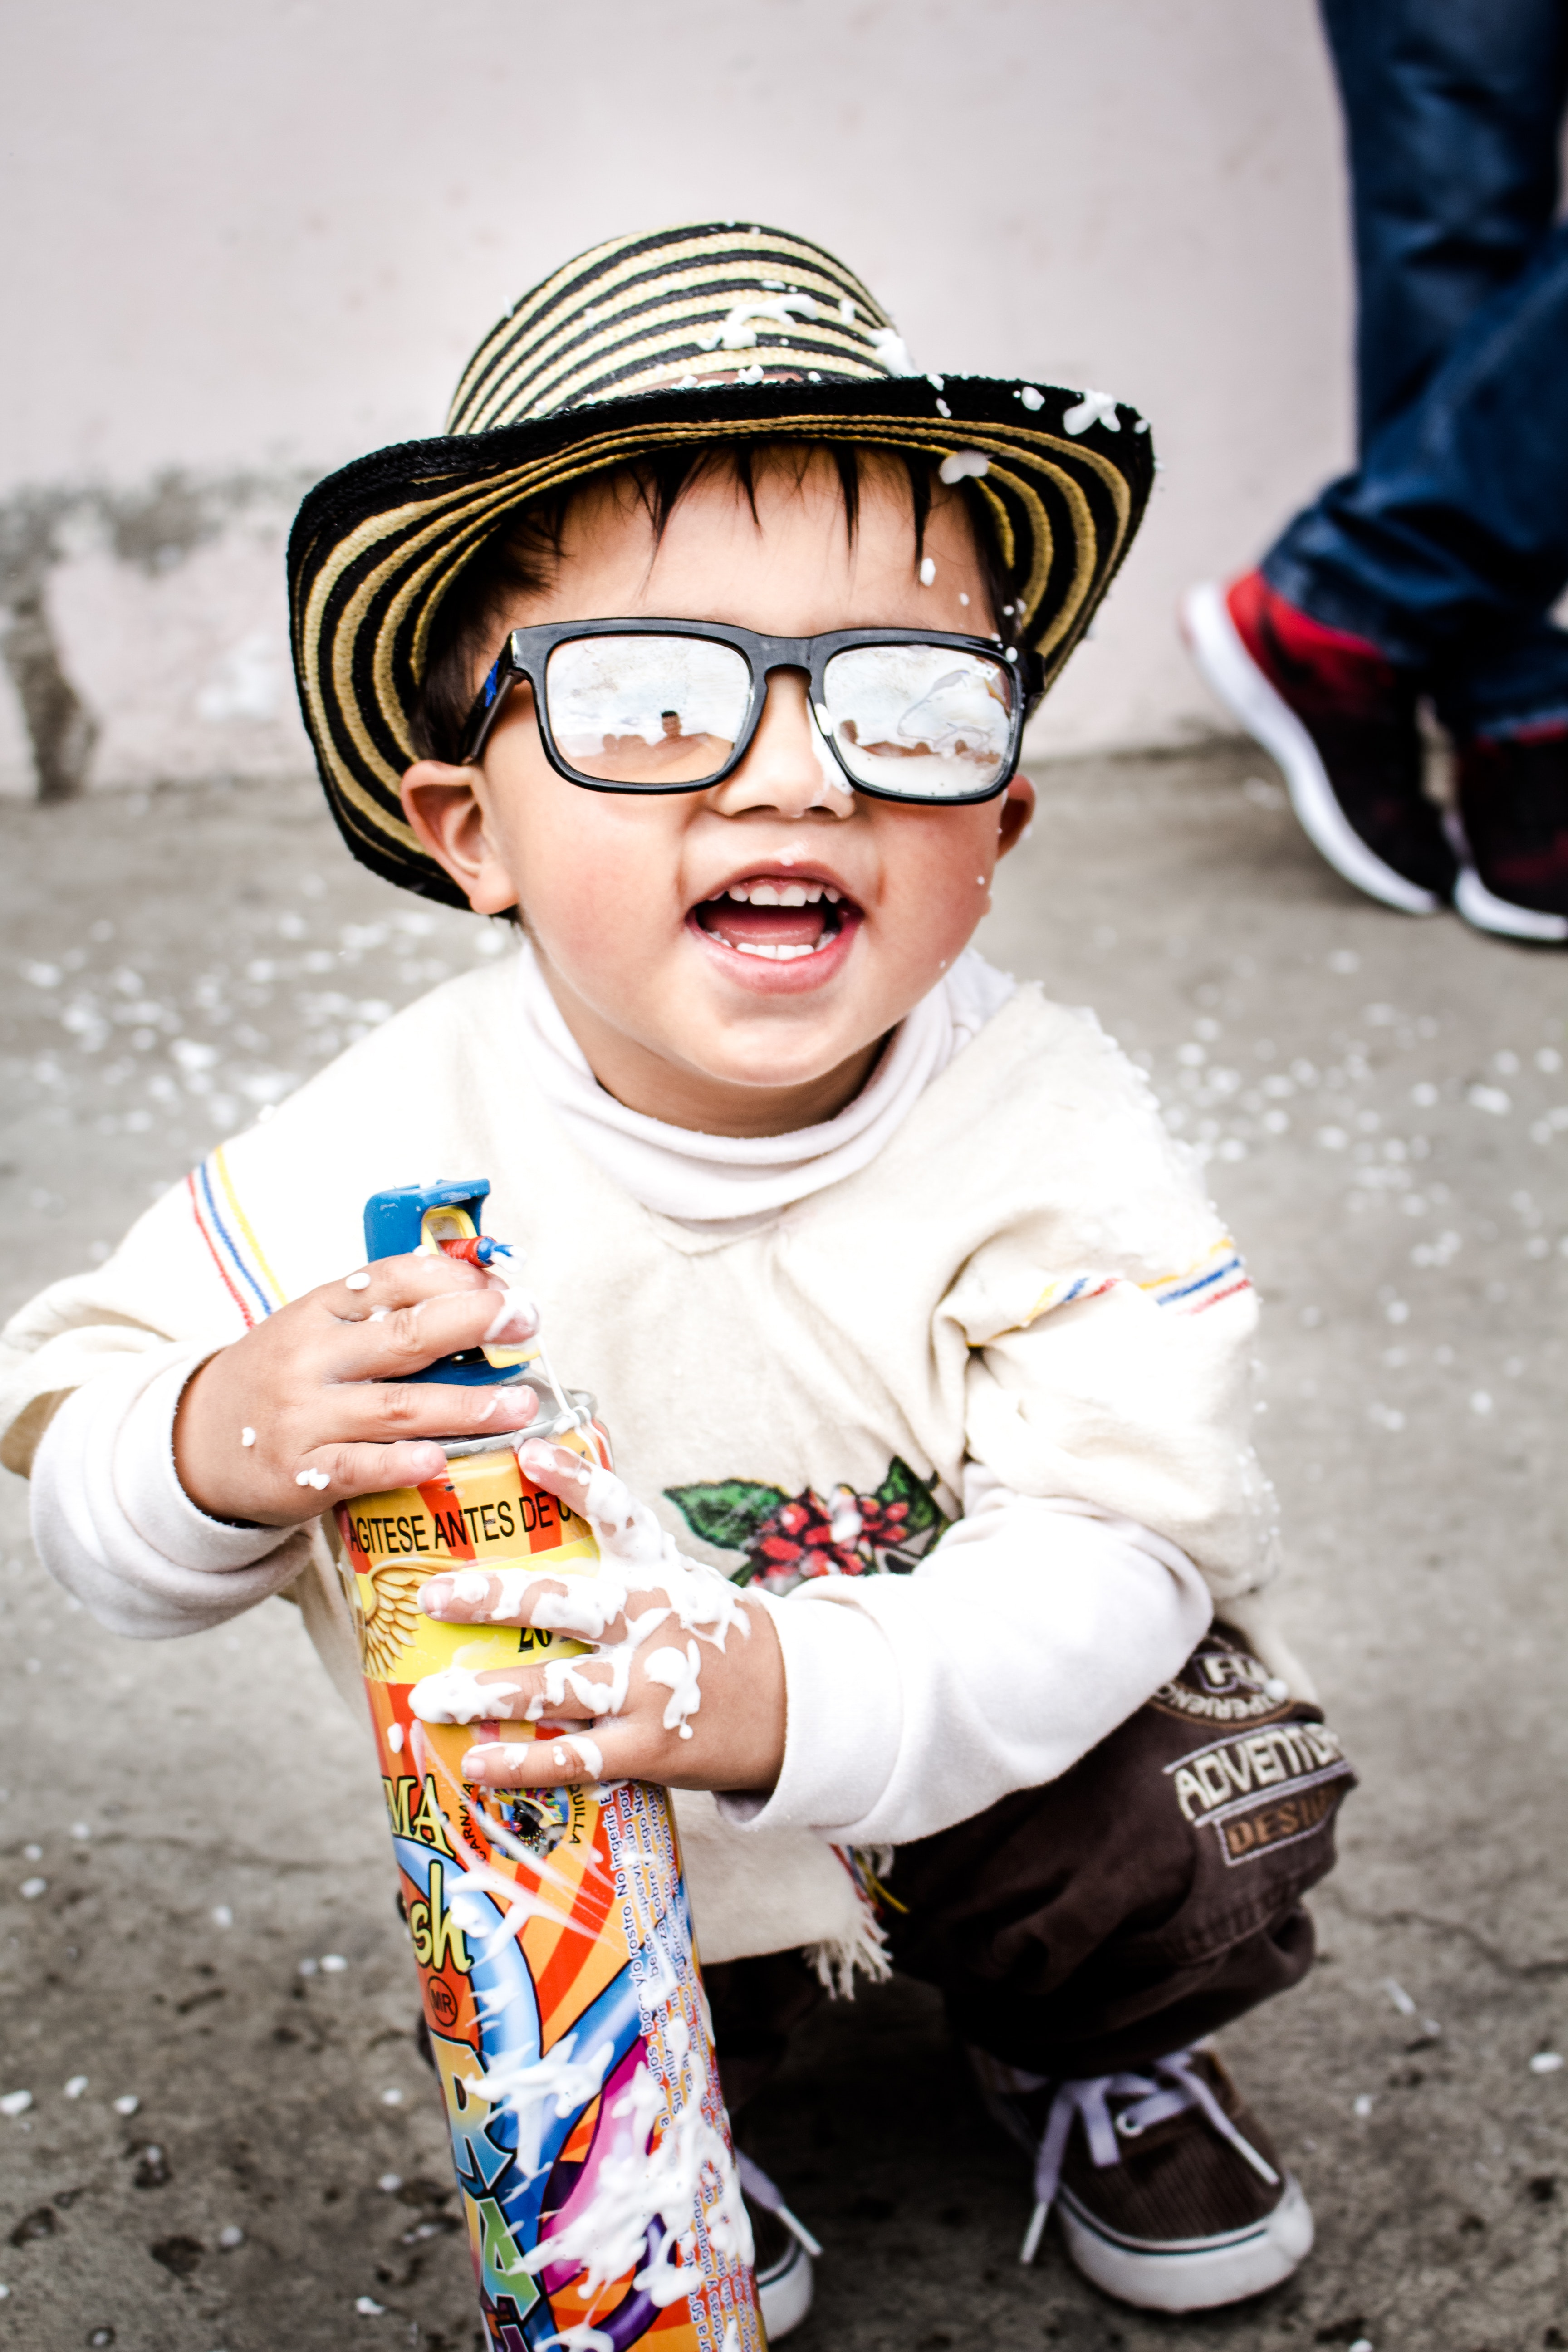 Photography of kid wearing sunglasses